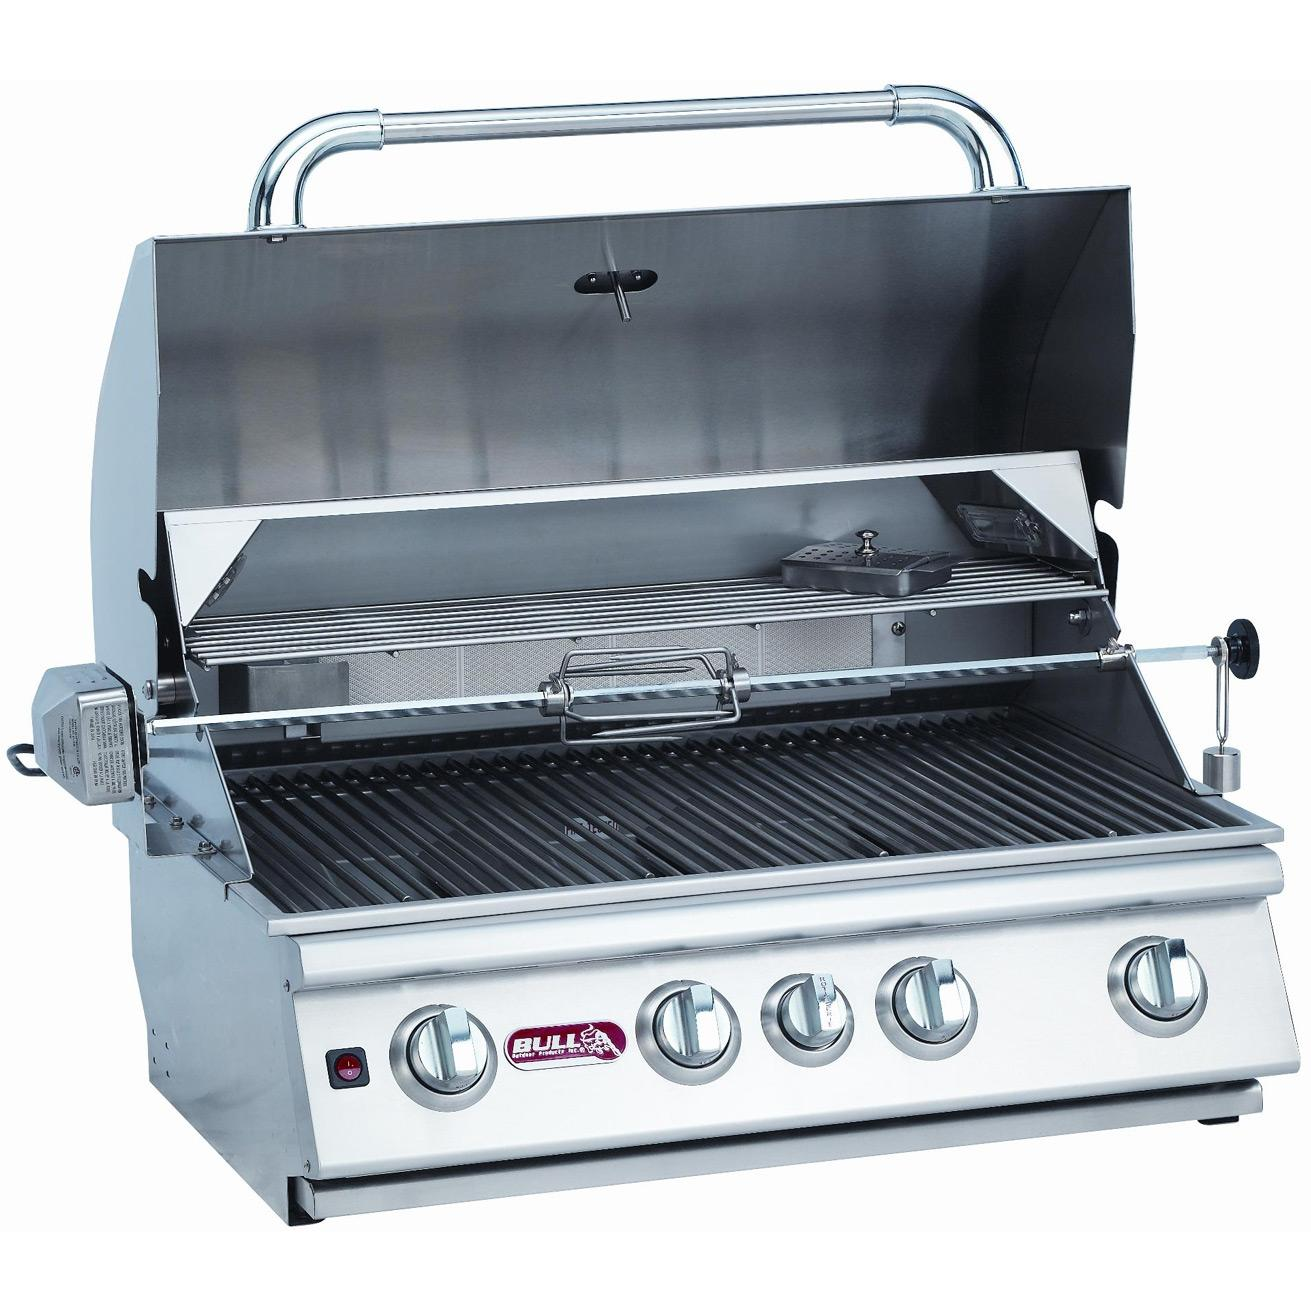 Bull Angus 4-burner Built-in Natural Gas Grill at Sears.com